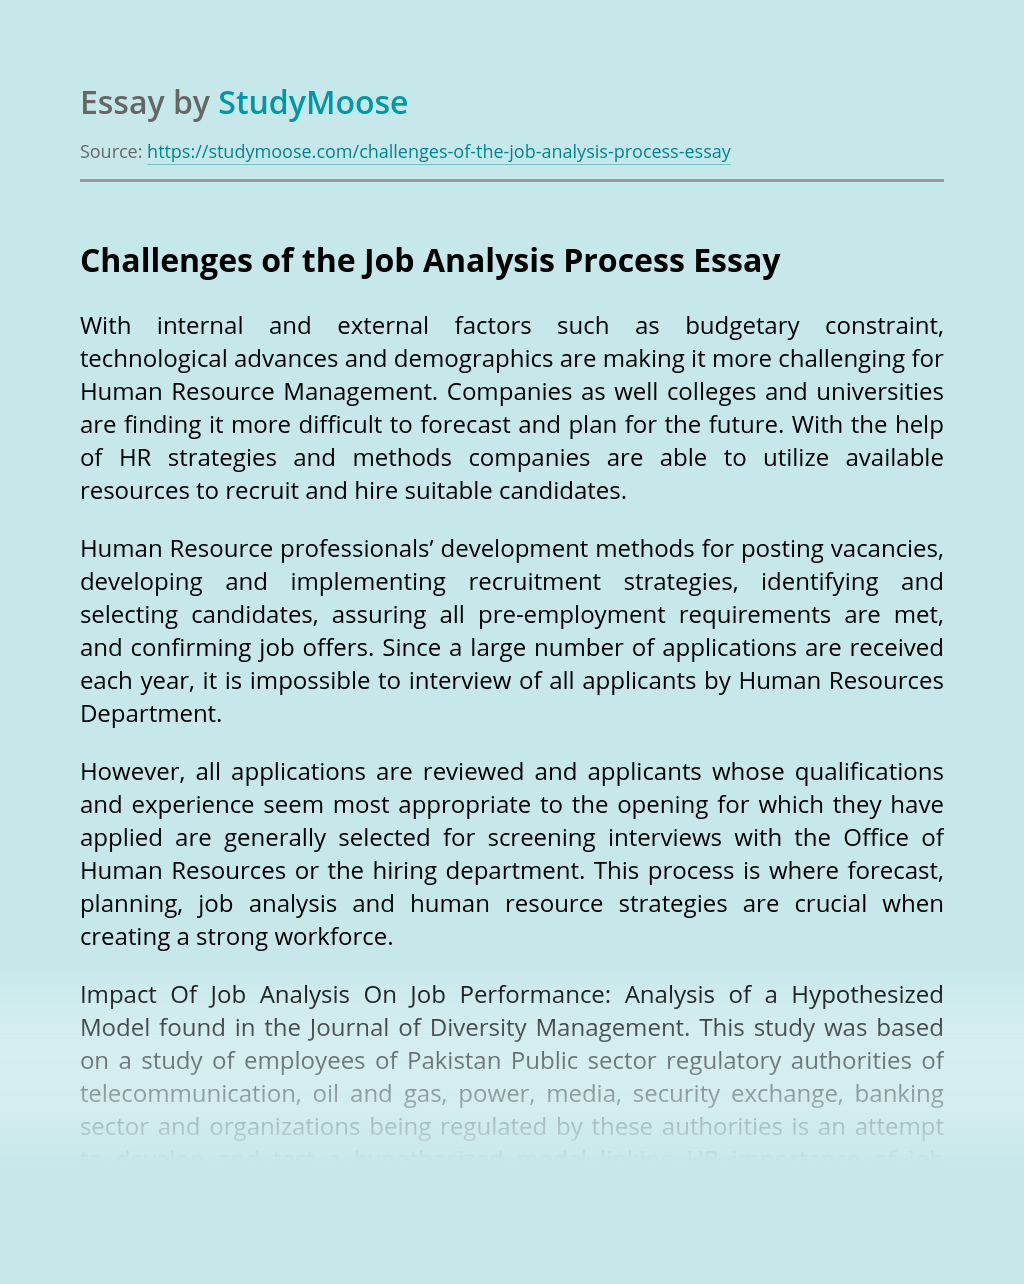 Challenges of the Job Analysis Process